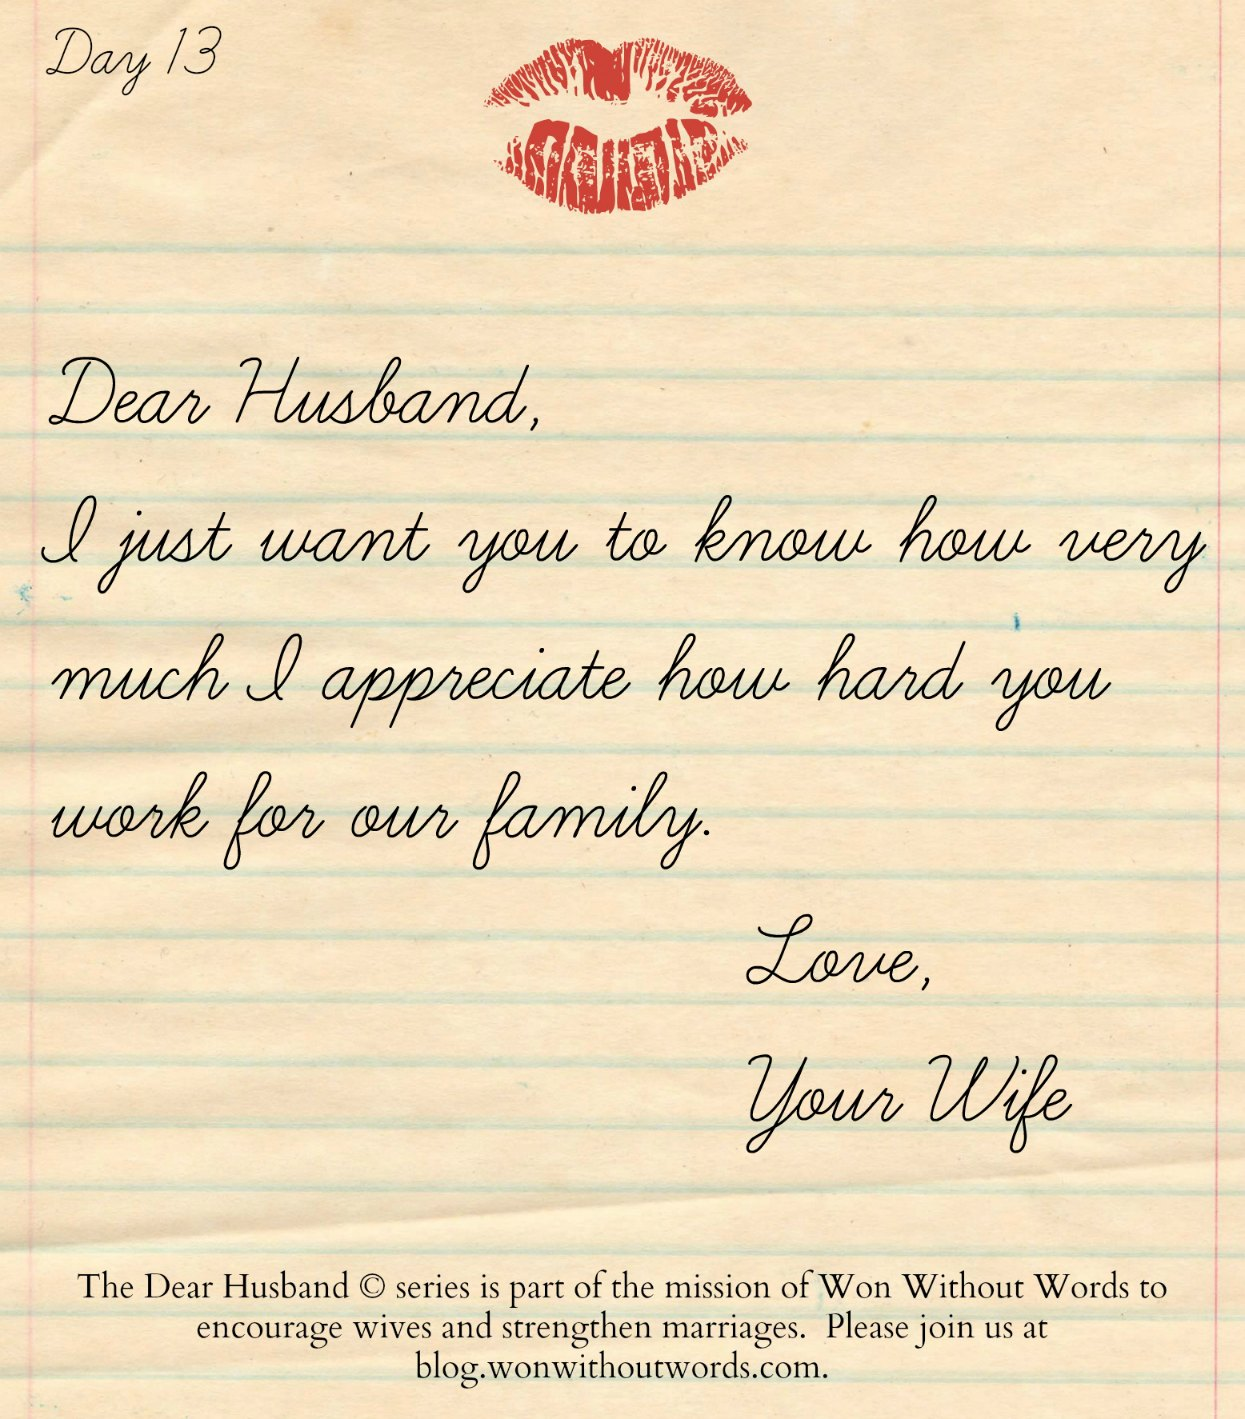 dear husband letter awesome dear husband letter cover letter examples 21317